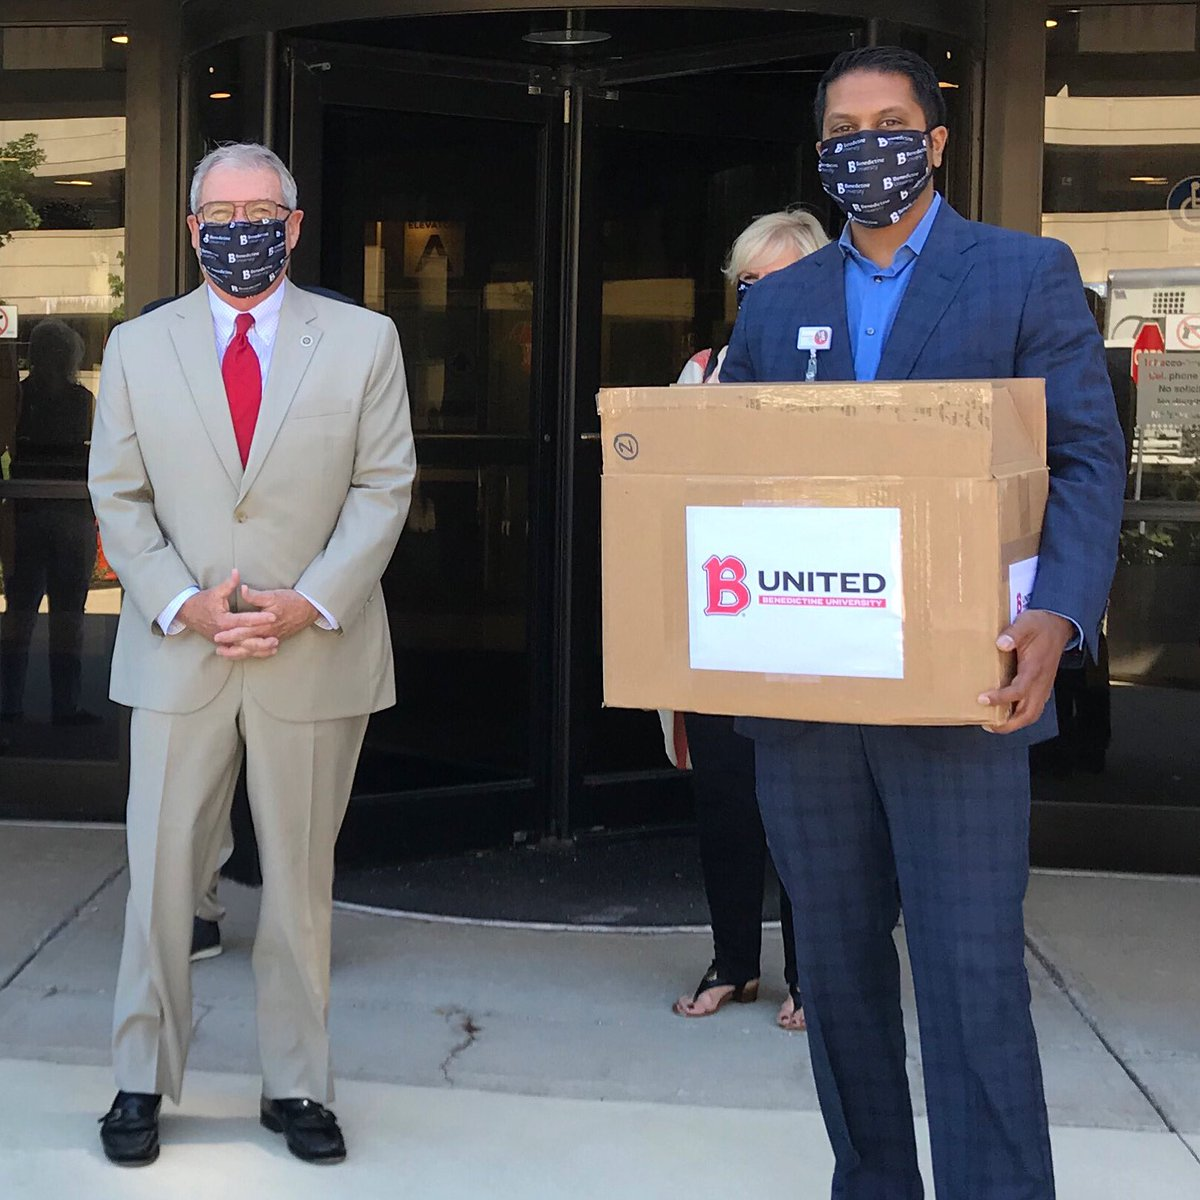 """Thanks to everyone who participated in our """"Buy a Mask, Give a Mask"""" campaign, we were able to donate 600 BenU face masks to Edward Hospital in Naperville and Catholic Charities, Diocese of Joliet. The campaign also raised over $25,000 for the BenU Mission Fund #BUnited https://t.co/qmkOZkJyAF"""